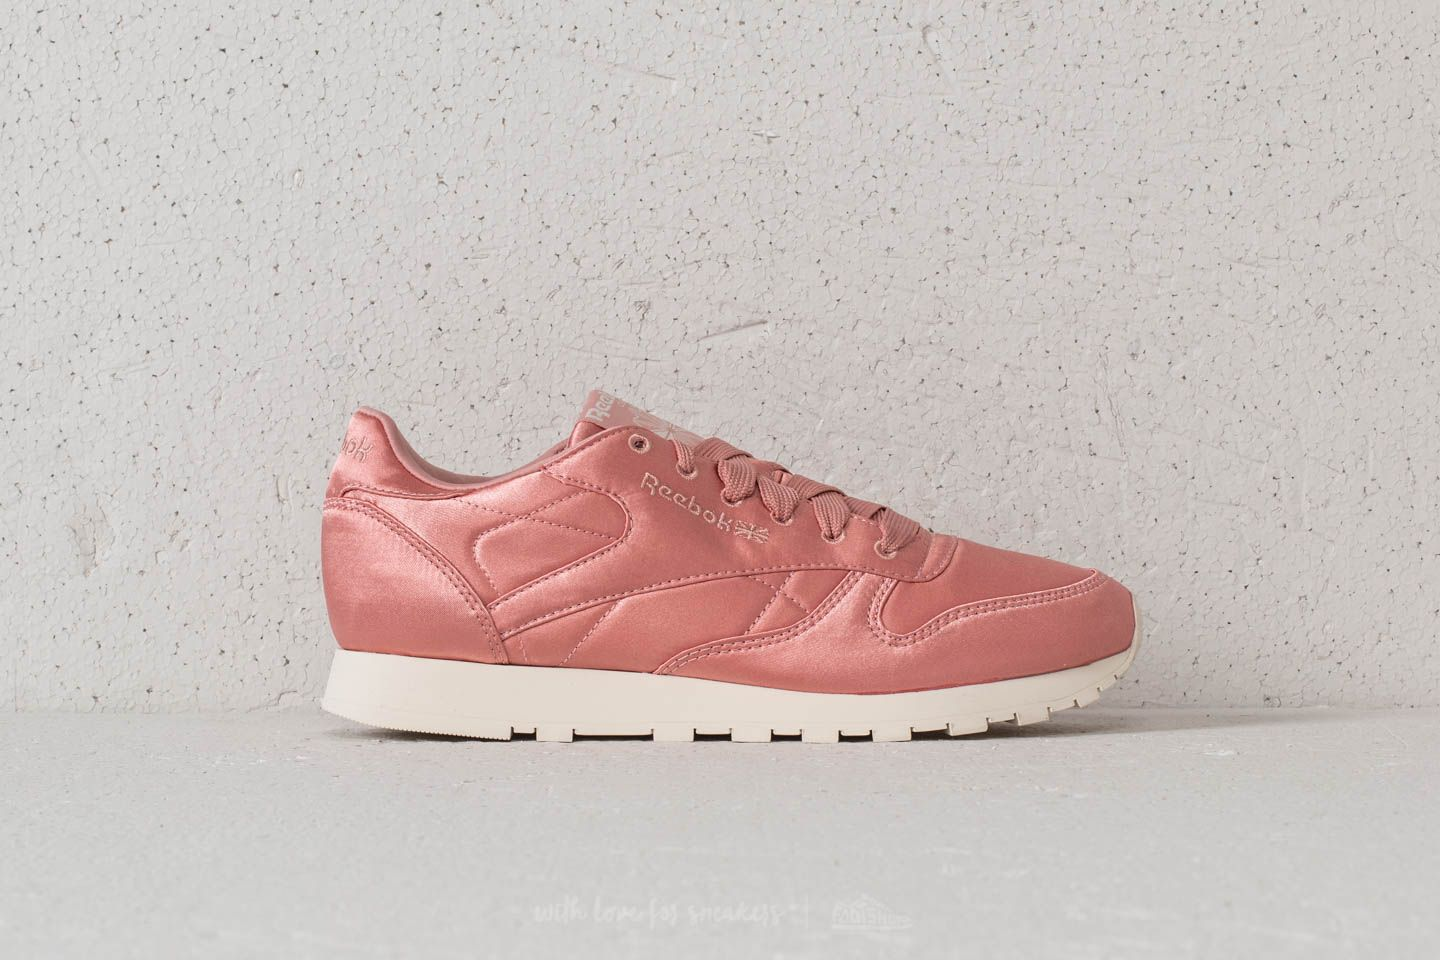 48b79da22bcf9 Reebok Classic Leather Satin Chalk Pink  Classic White at a great price 52  € buy